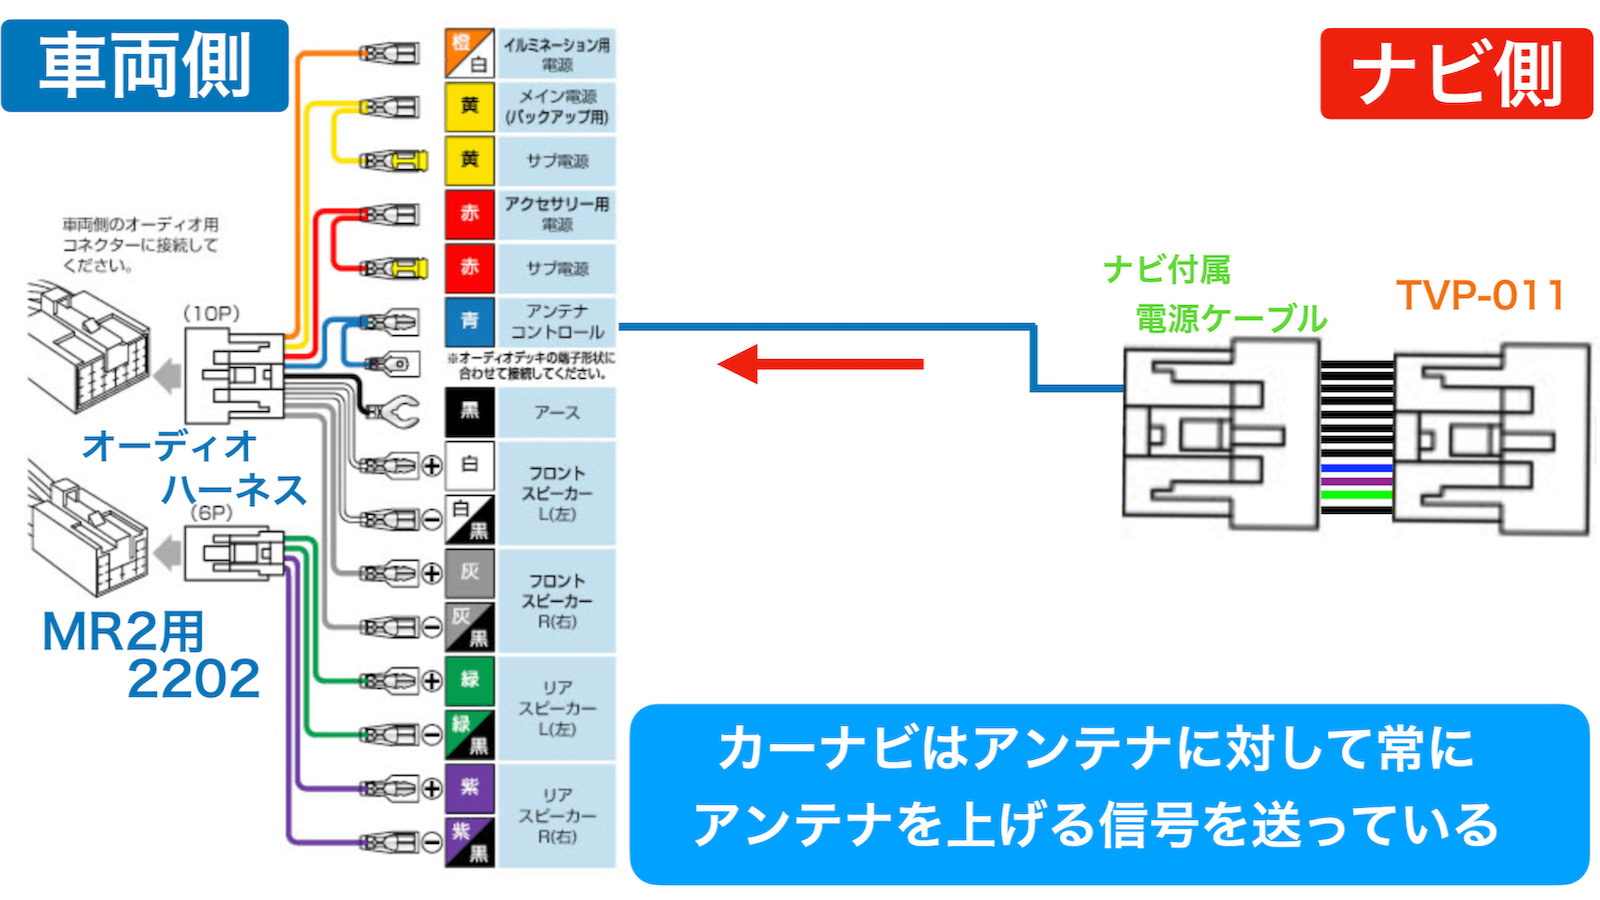 MR2 car navigation system-elevating antenna connection diagram